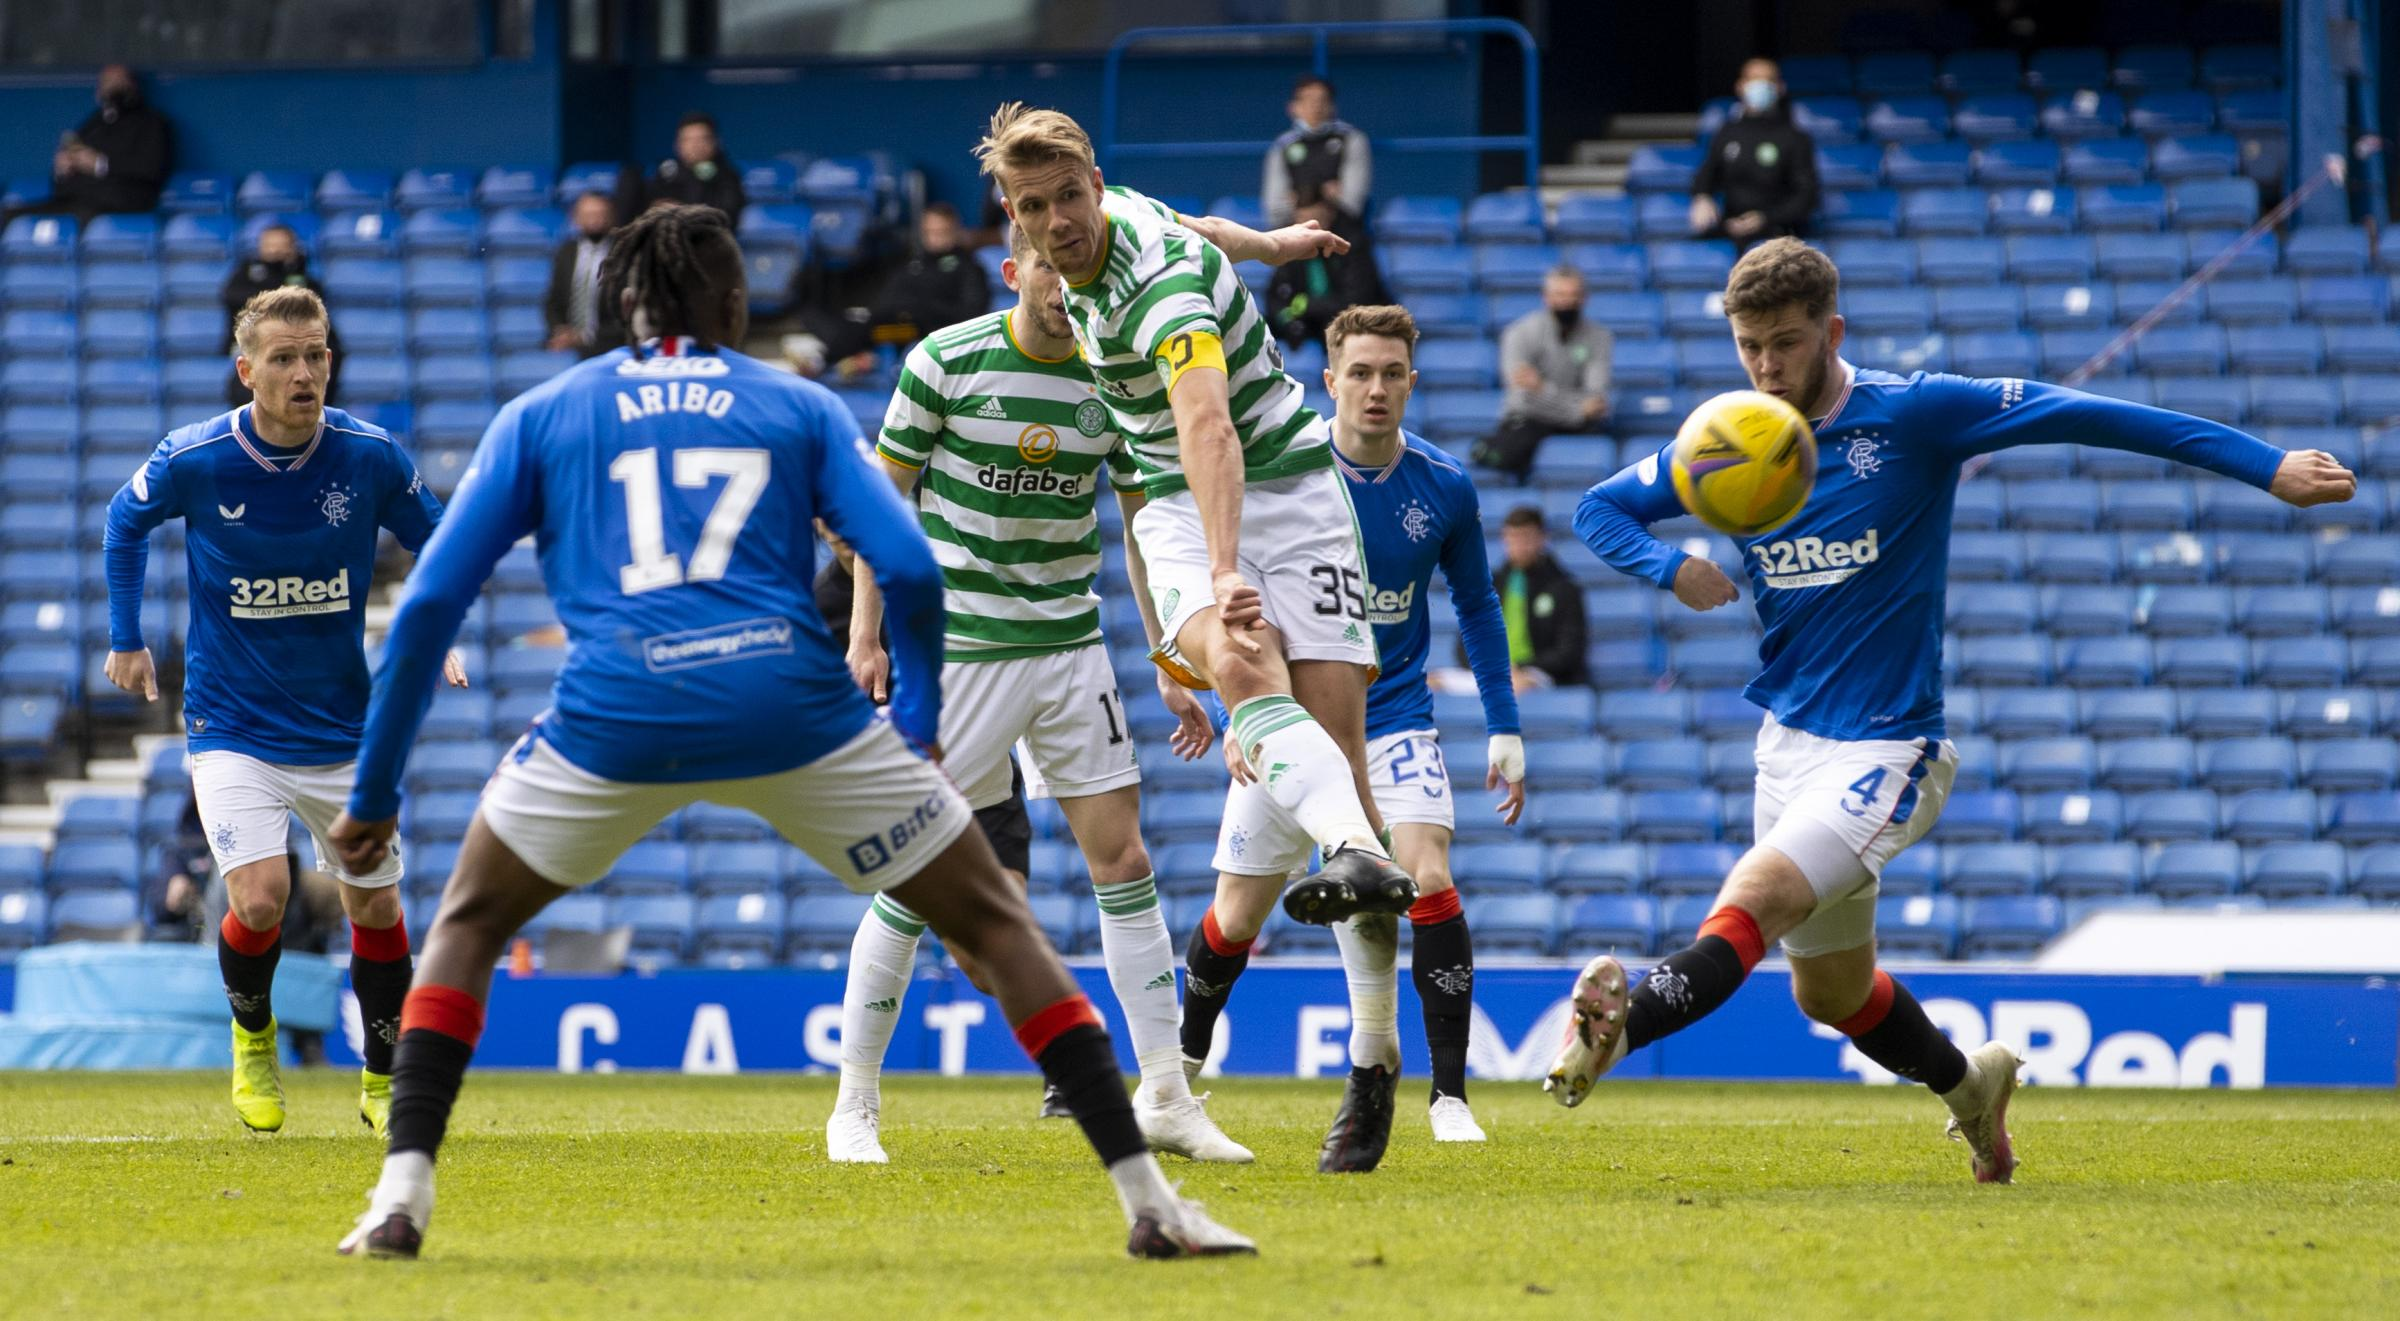 Rangers vs Celtic fixture dates released as Ibrox hosts opener and full Premiership card confirmed